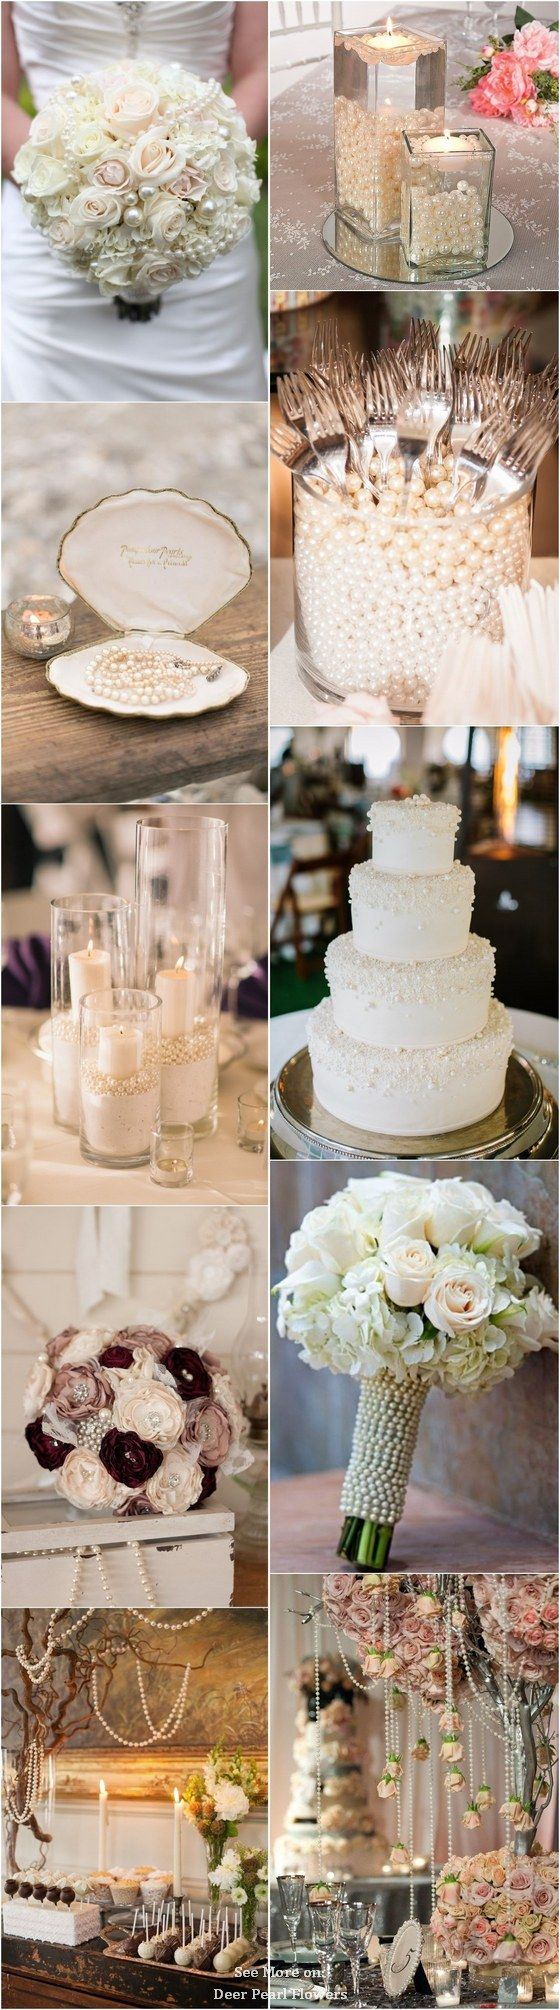 Vintage pearls wedding ideas and themes / http://www.deerpearlflowers.com/vintage-pearl-wedding-ideas/